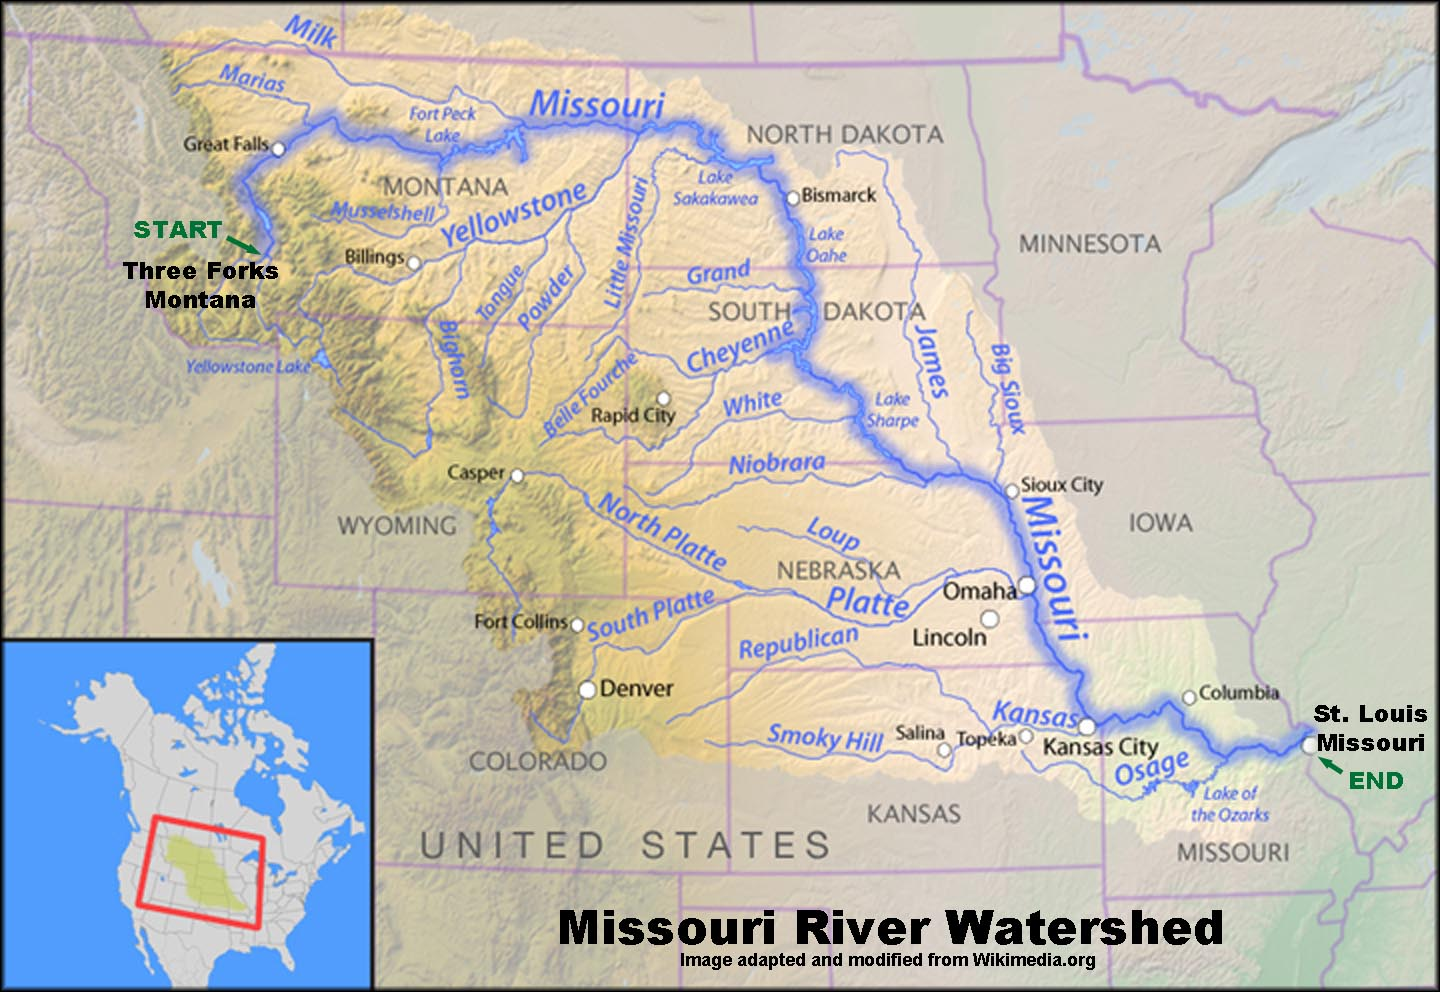 Missouri River Watershed.